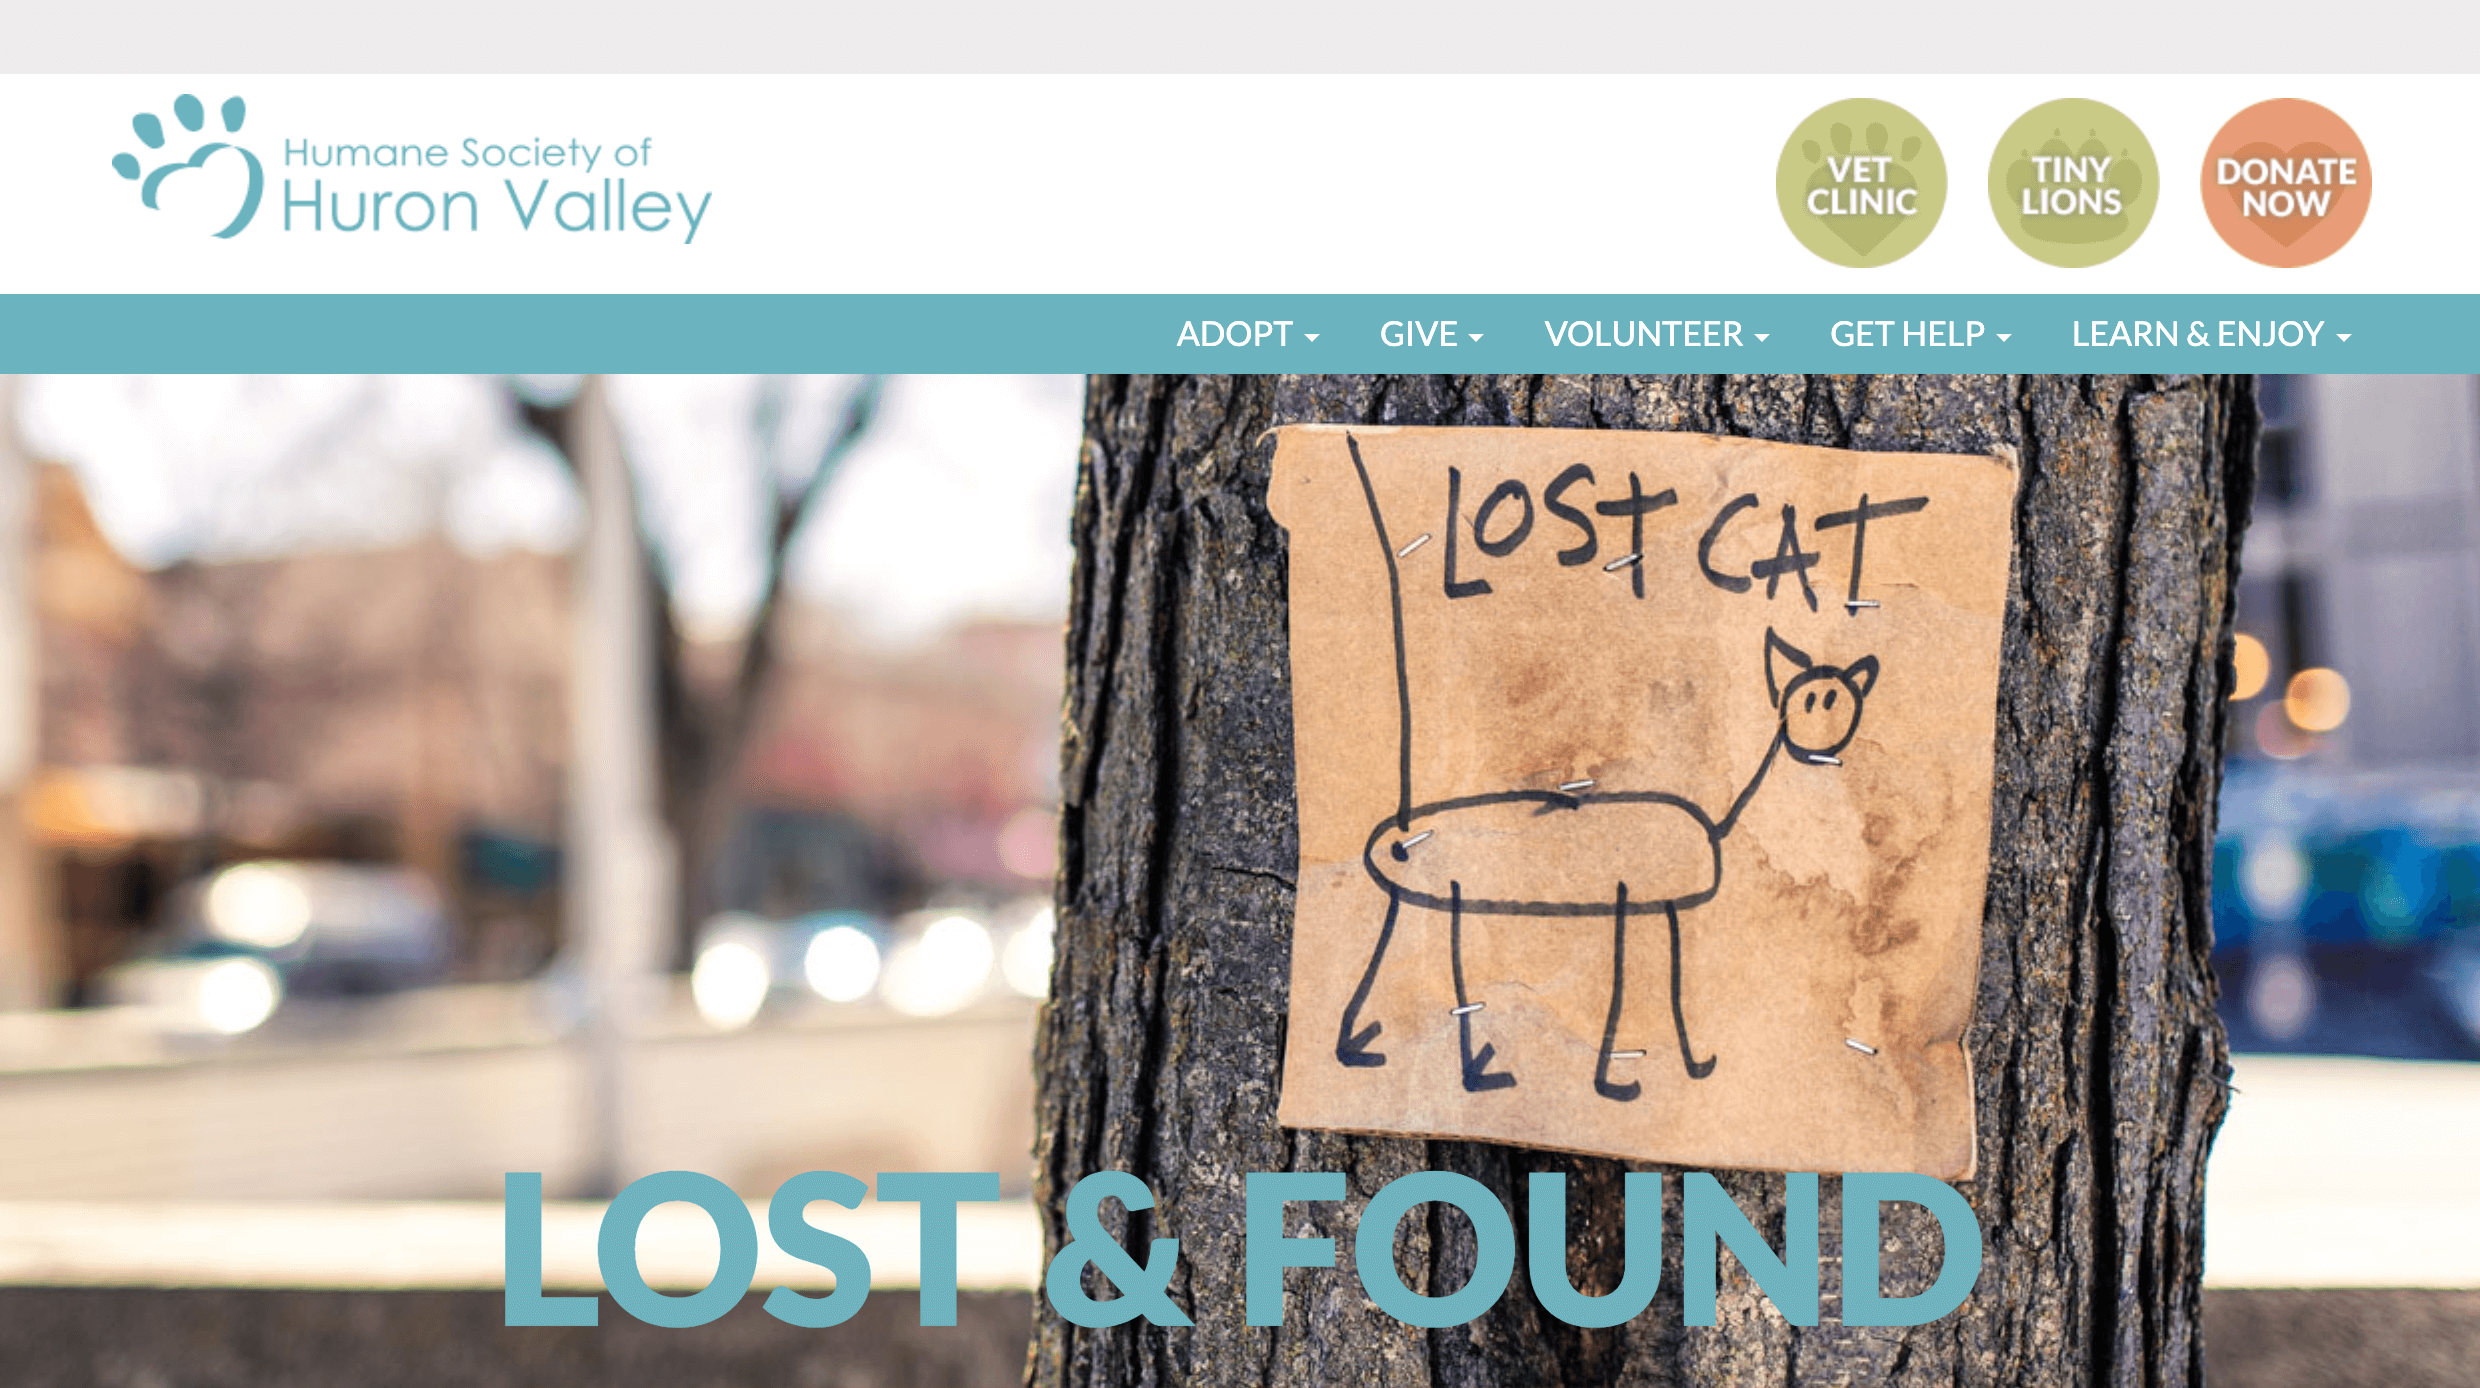 A lost cat poster is attached to a tree trunk